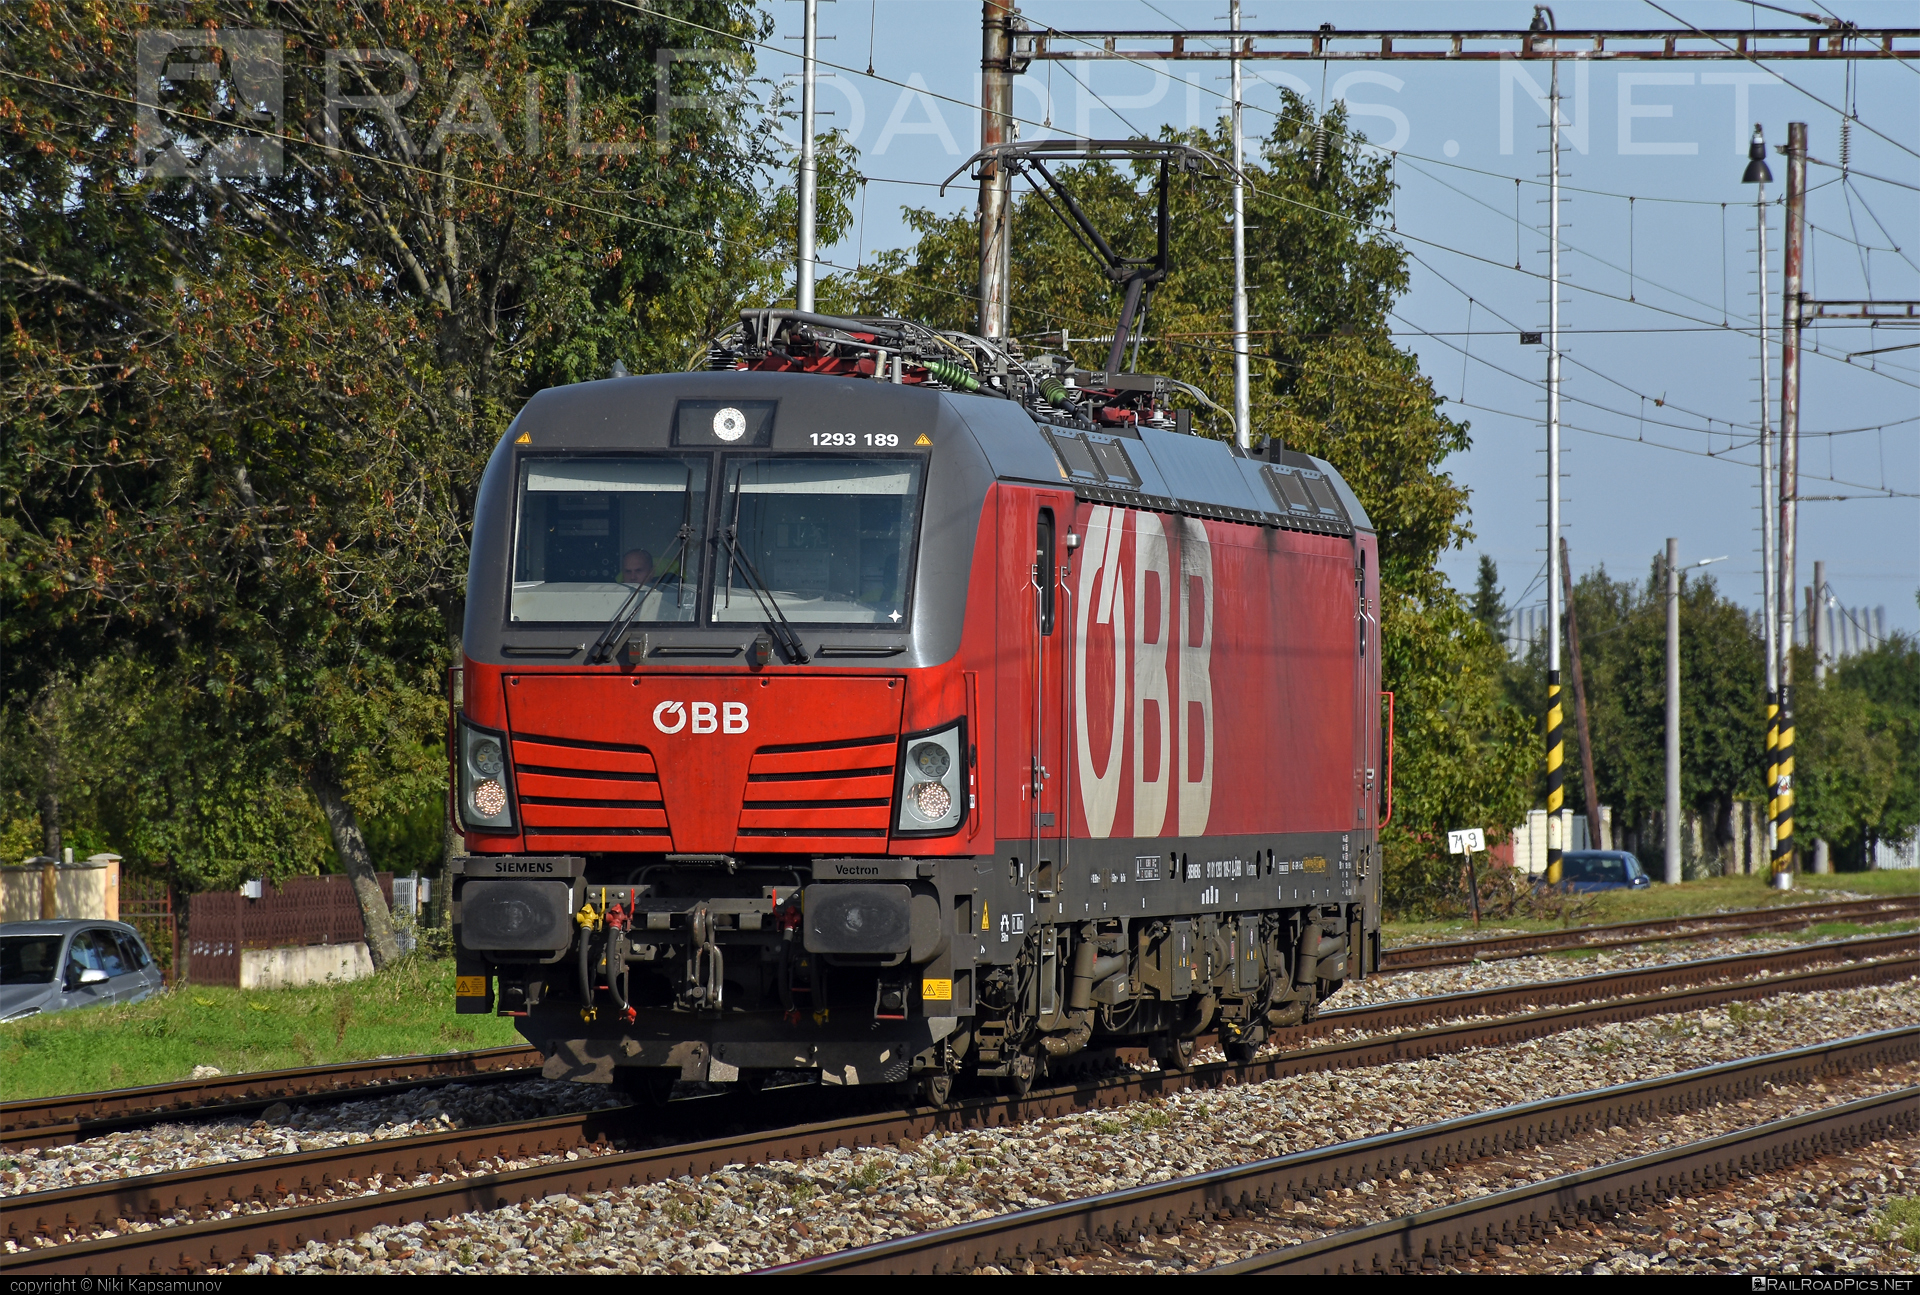 Siemens Vectron MS - 1293 189 operated by Rail Cargo Carrier – Slovakia s.r.o. #obb #osterreichischebundesbahnen #siemens #siemensvectron #siemensvectronms #vectron #vectronms #wssk